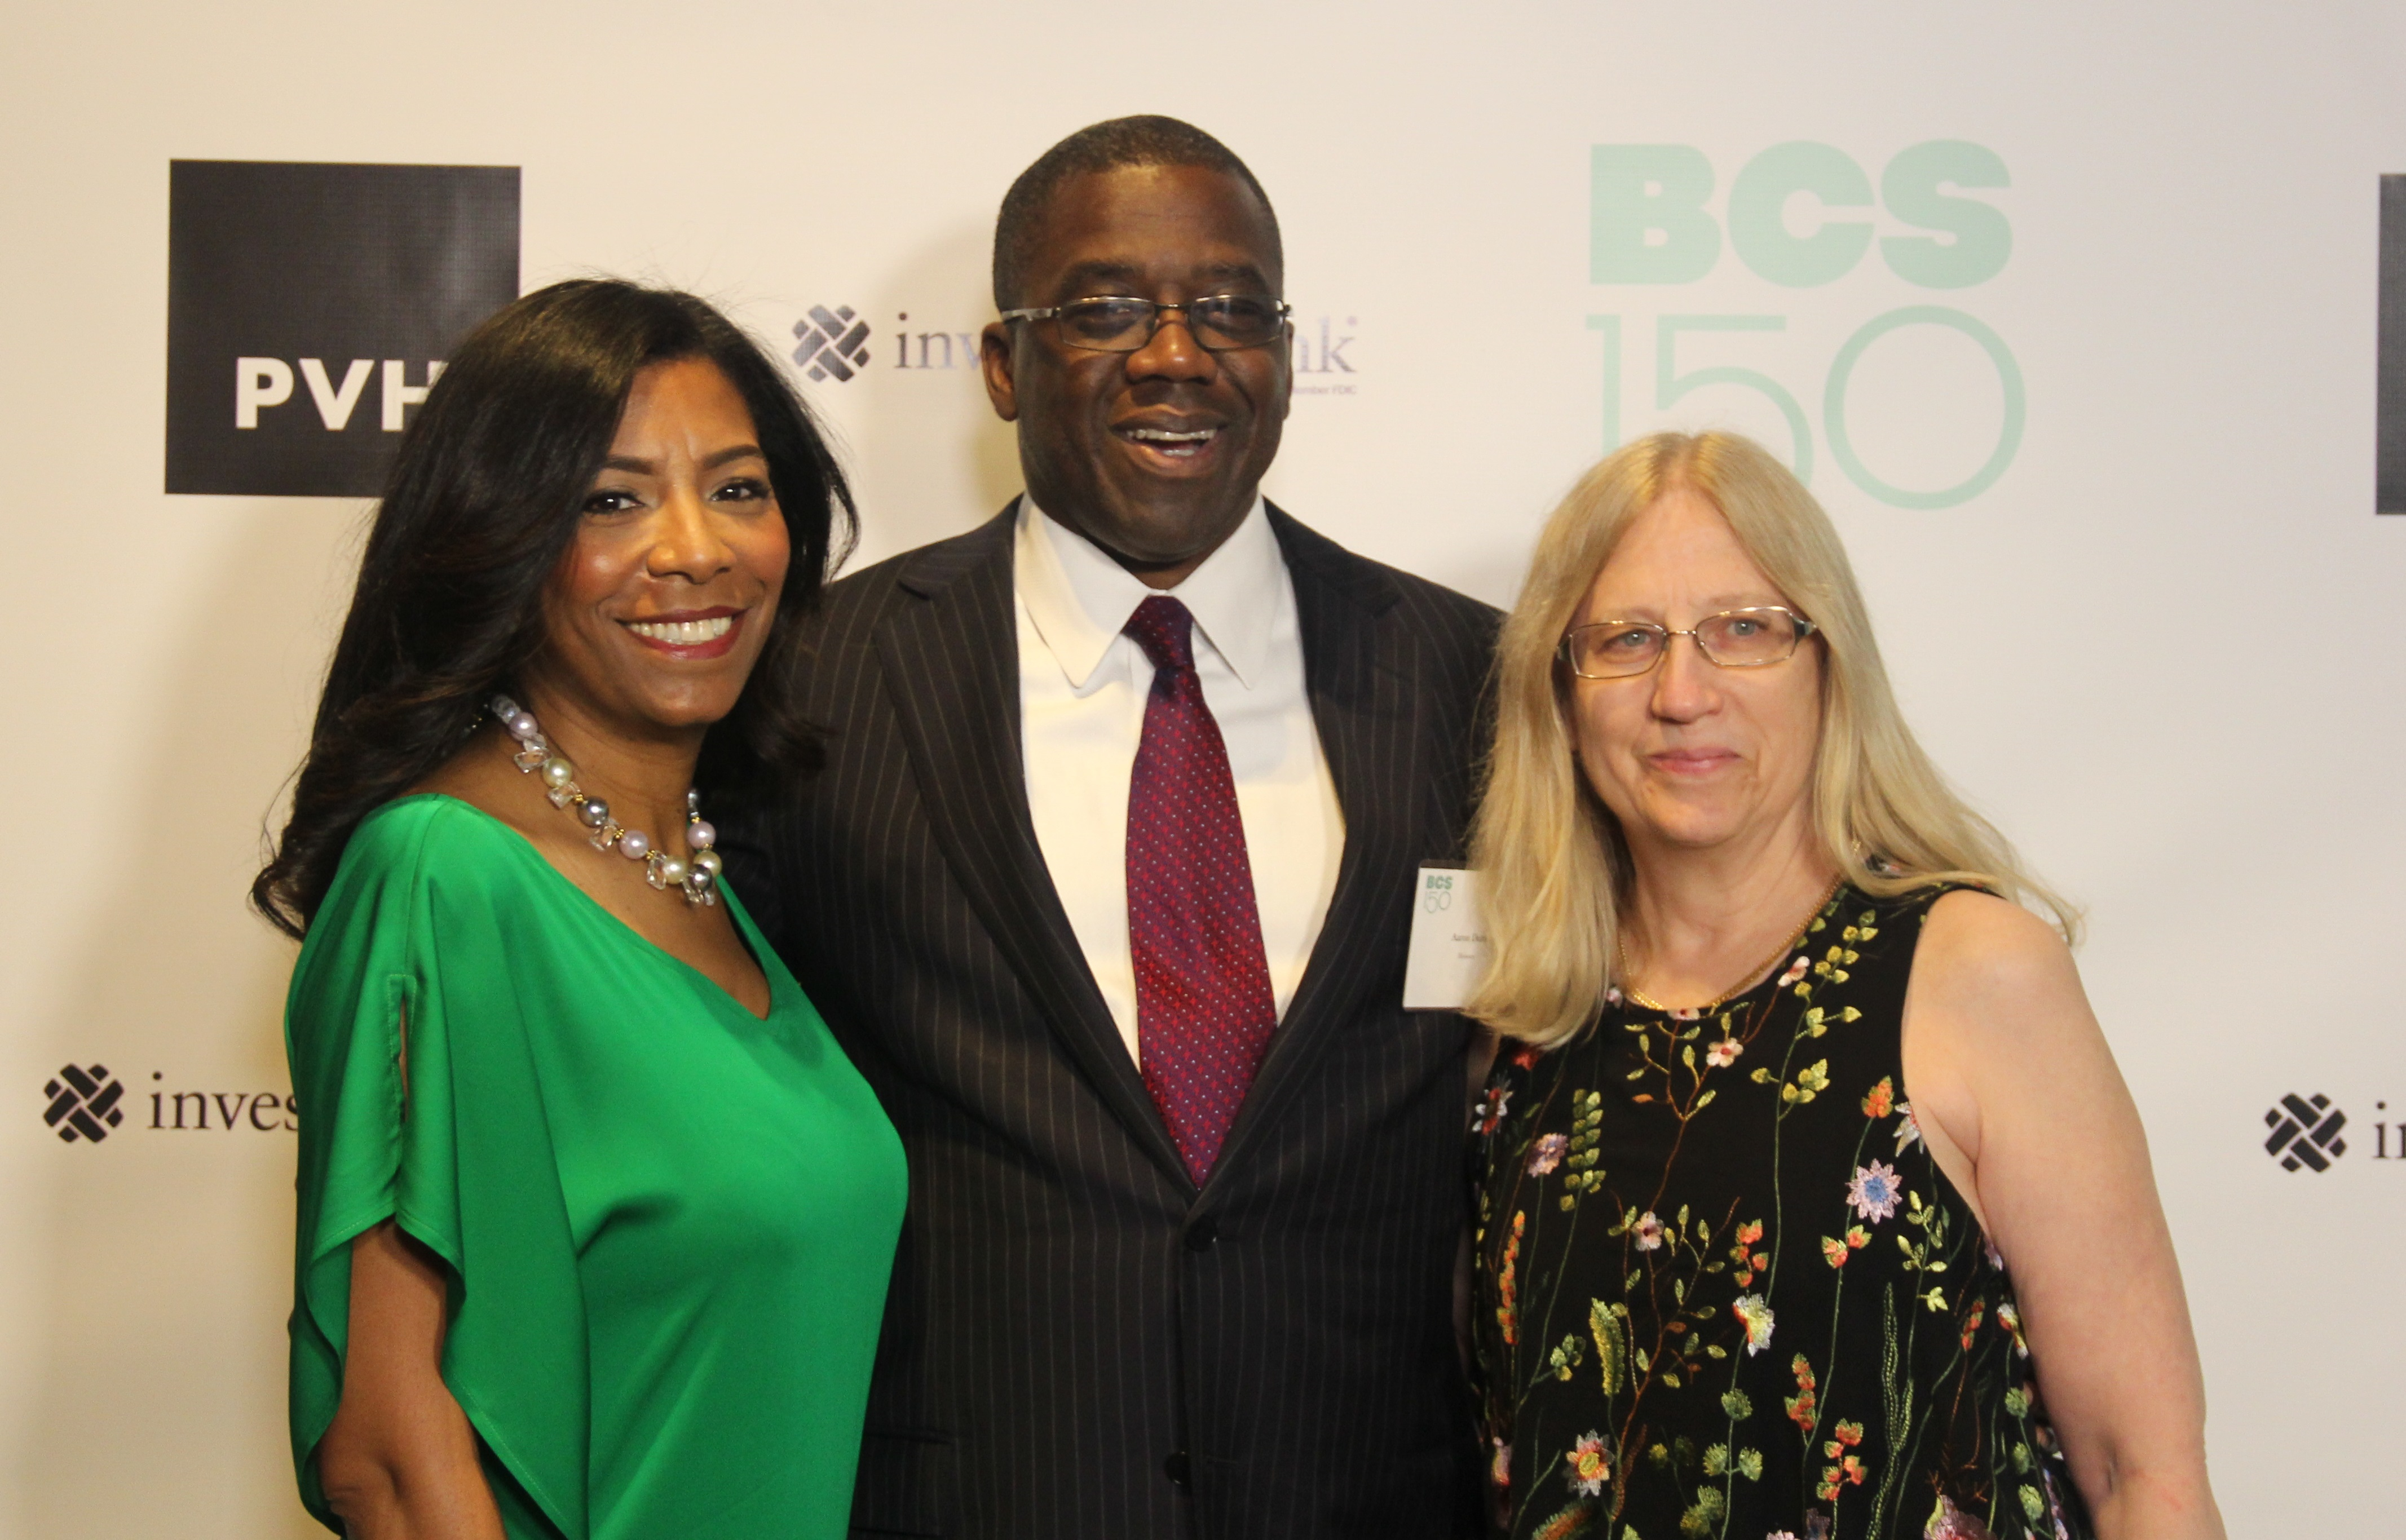 Brooklynites Aaron Dean and Dr. Deborah Dean honored with  the Brooklyn Community Services Philanthropic Leadership Award